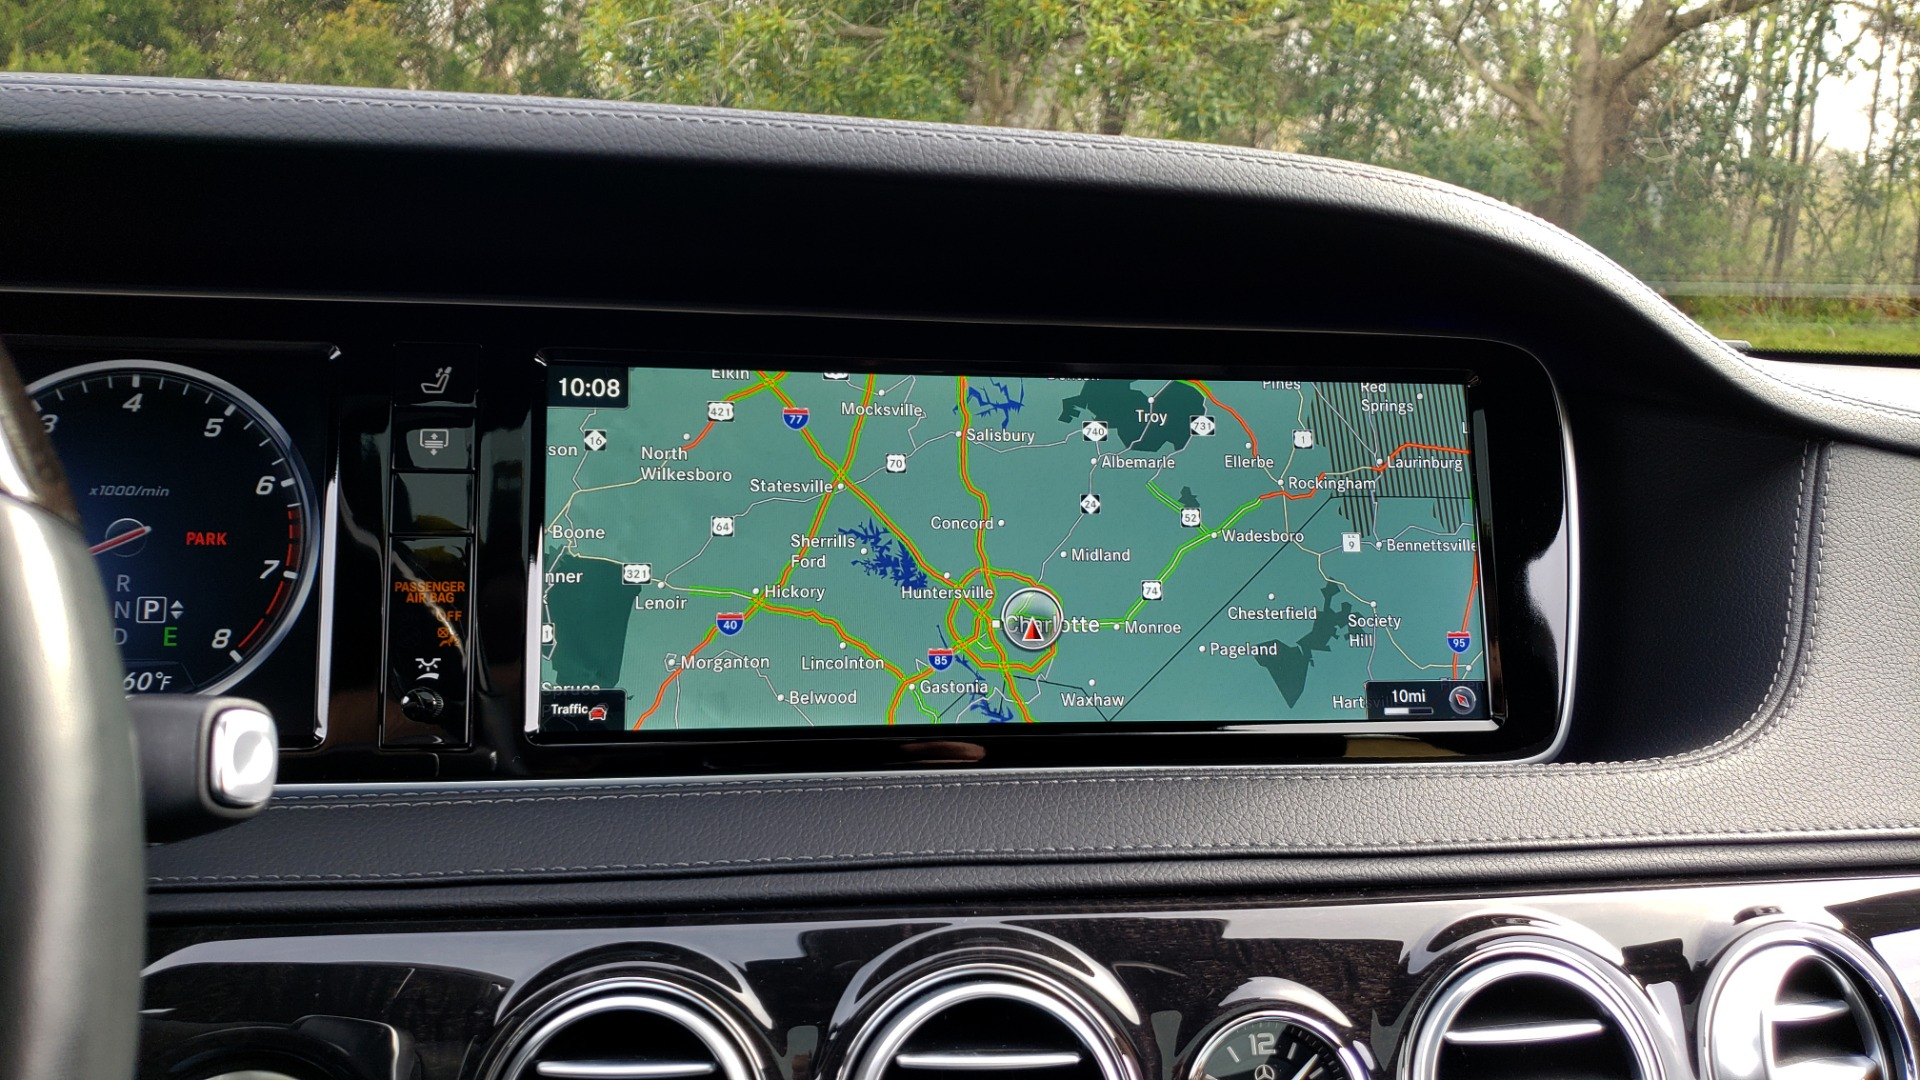 Used 2017 Mercedes-Benz S-CLASS S 550 4MATIC SPORT / PREM PKG / WARMTH & COMFORT / KEYLESS-GO for sale Sold at Formula Imports in Charlotte NC 28227 51